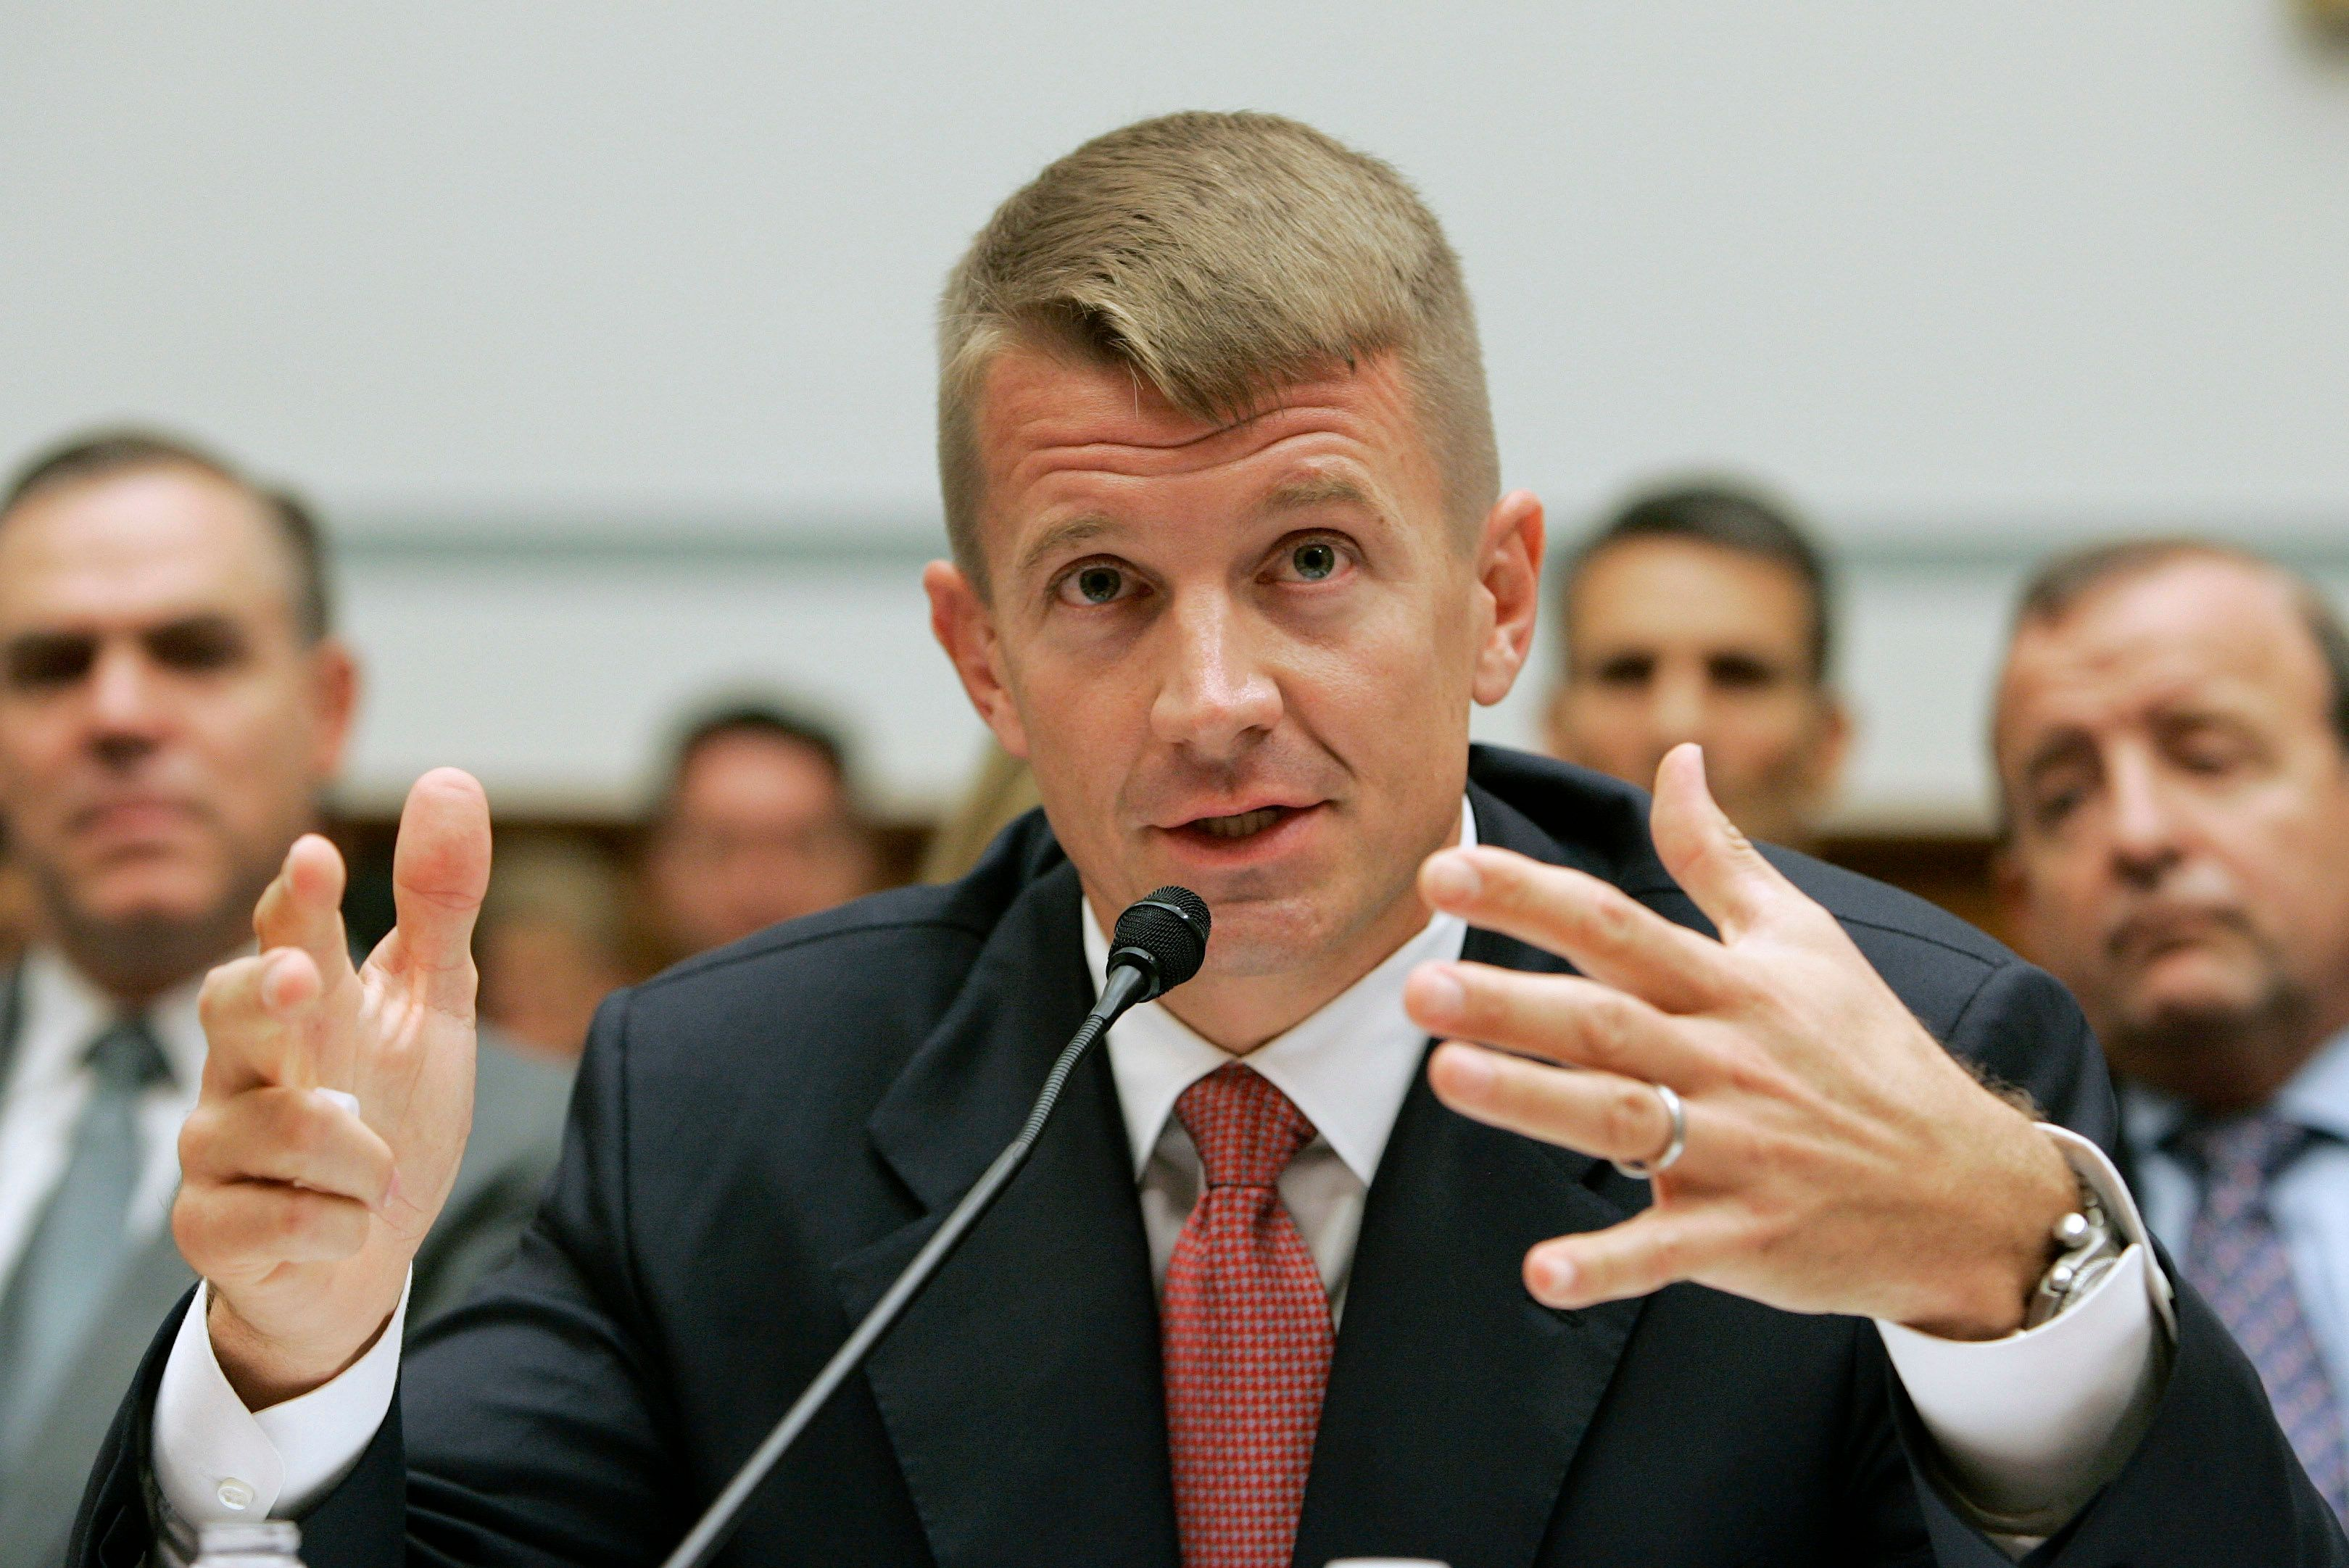 Blackwater founder Erik Prince is set to meet with members of Congress in September.